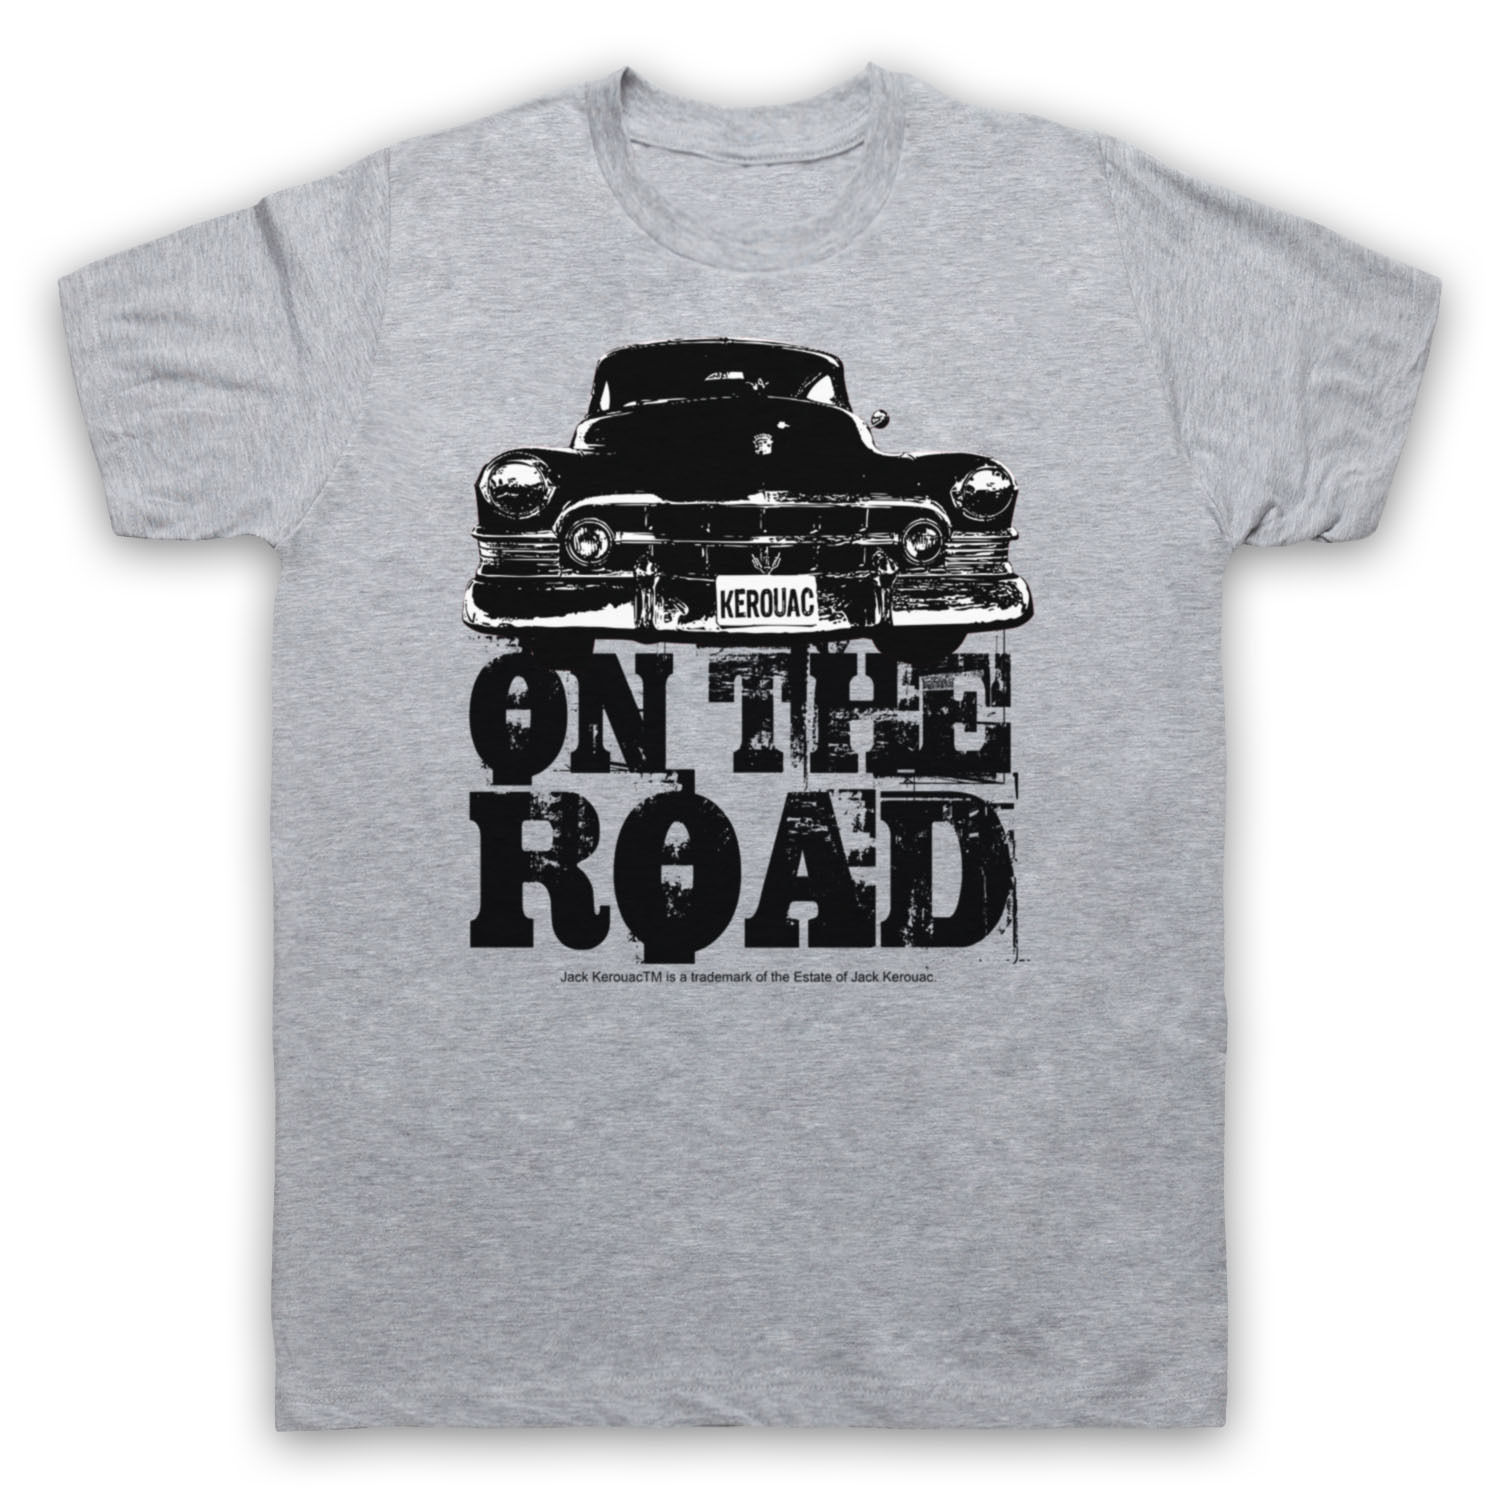 CADDY ON THE ROAD JACK KEROUAC UNOFFICIAL BEAT BOOK T-SHIRT ADULTS & KIDS SIZES